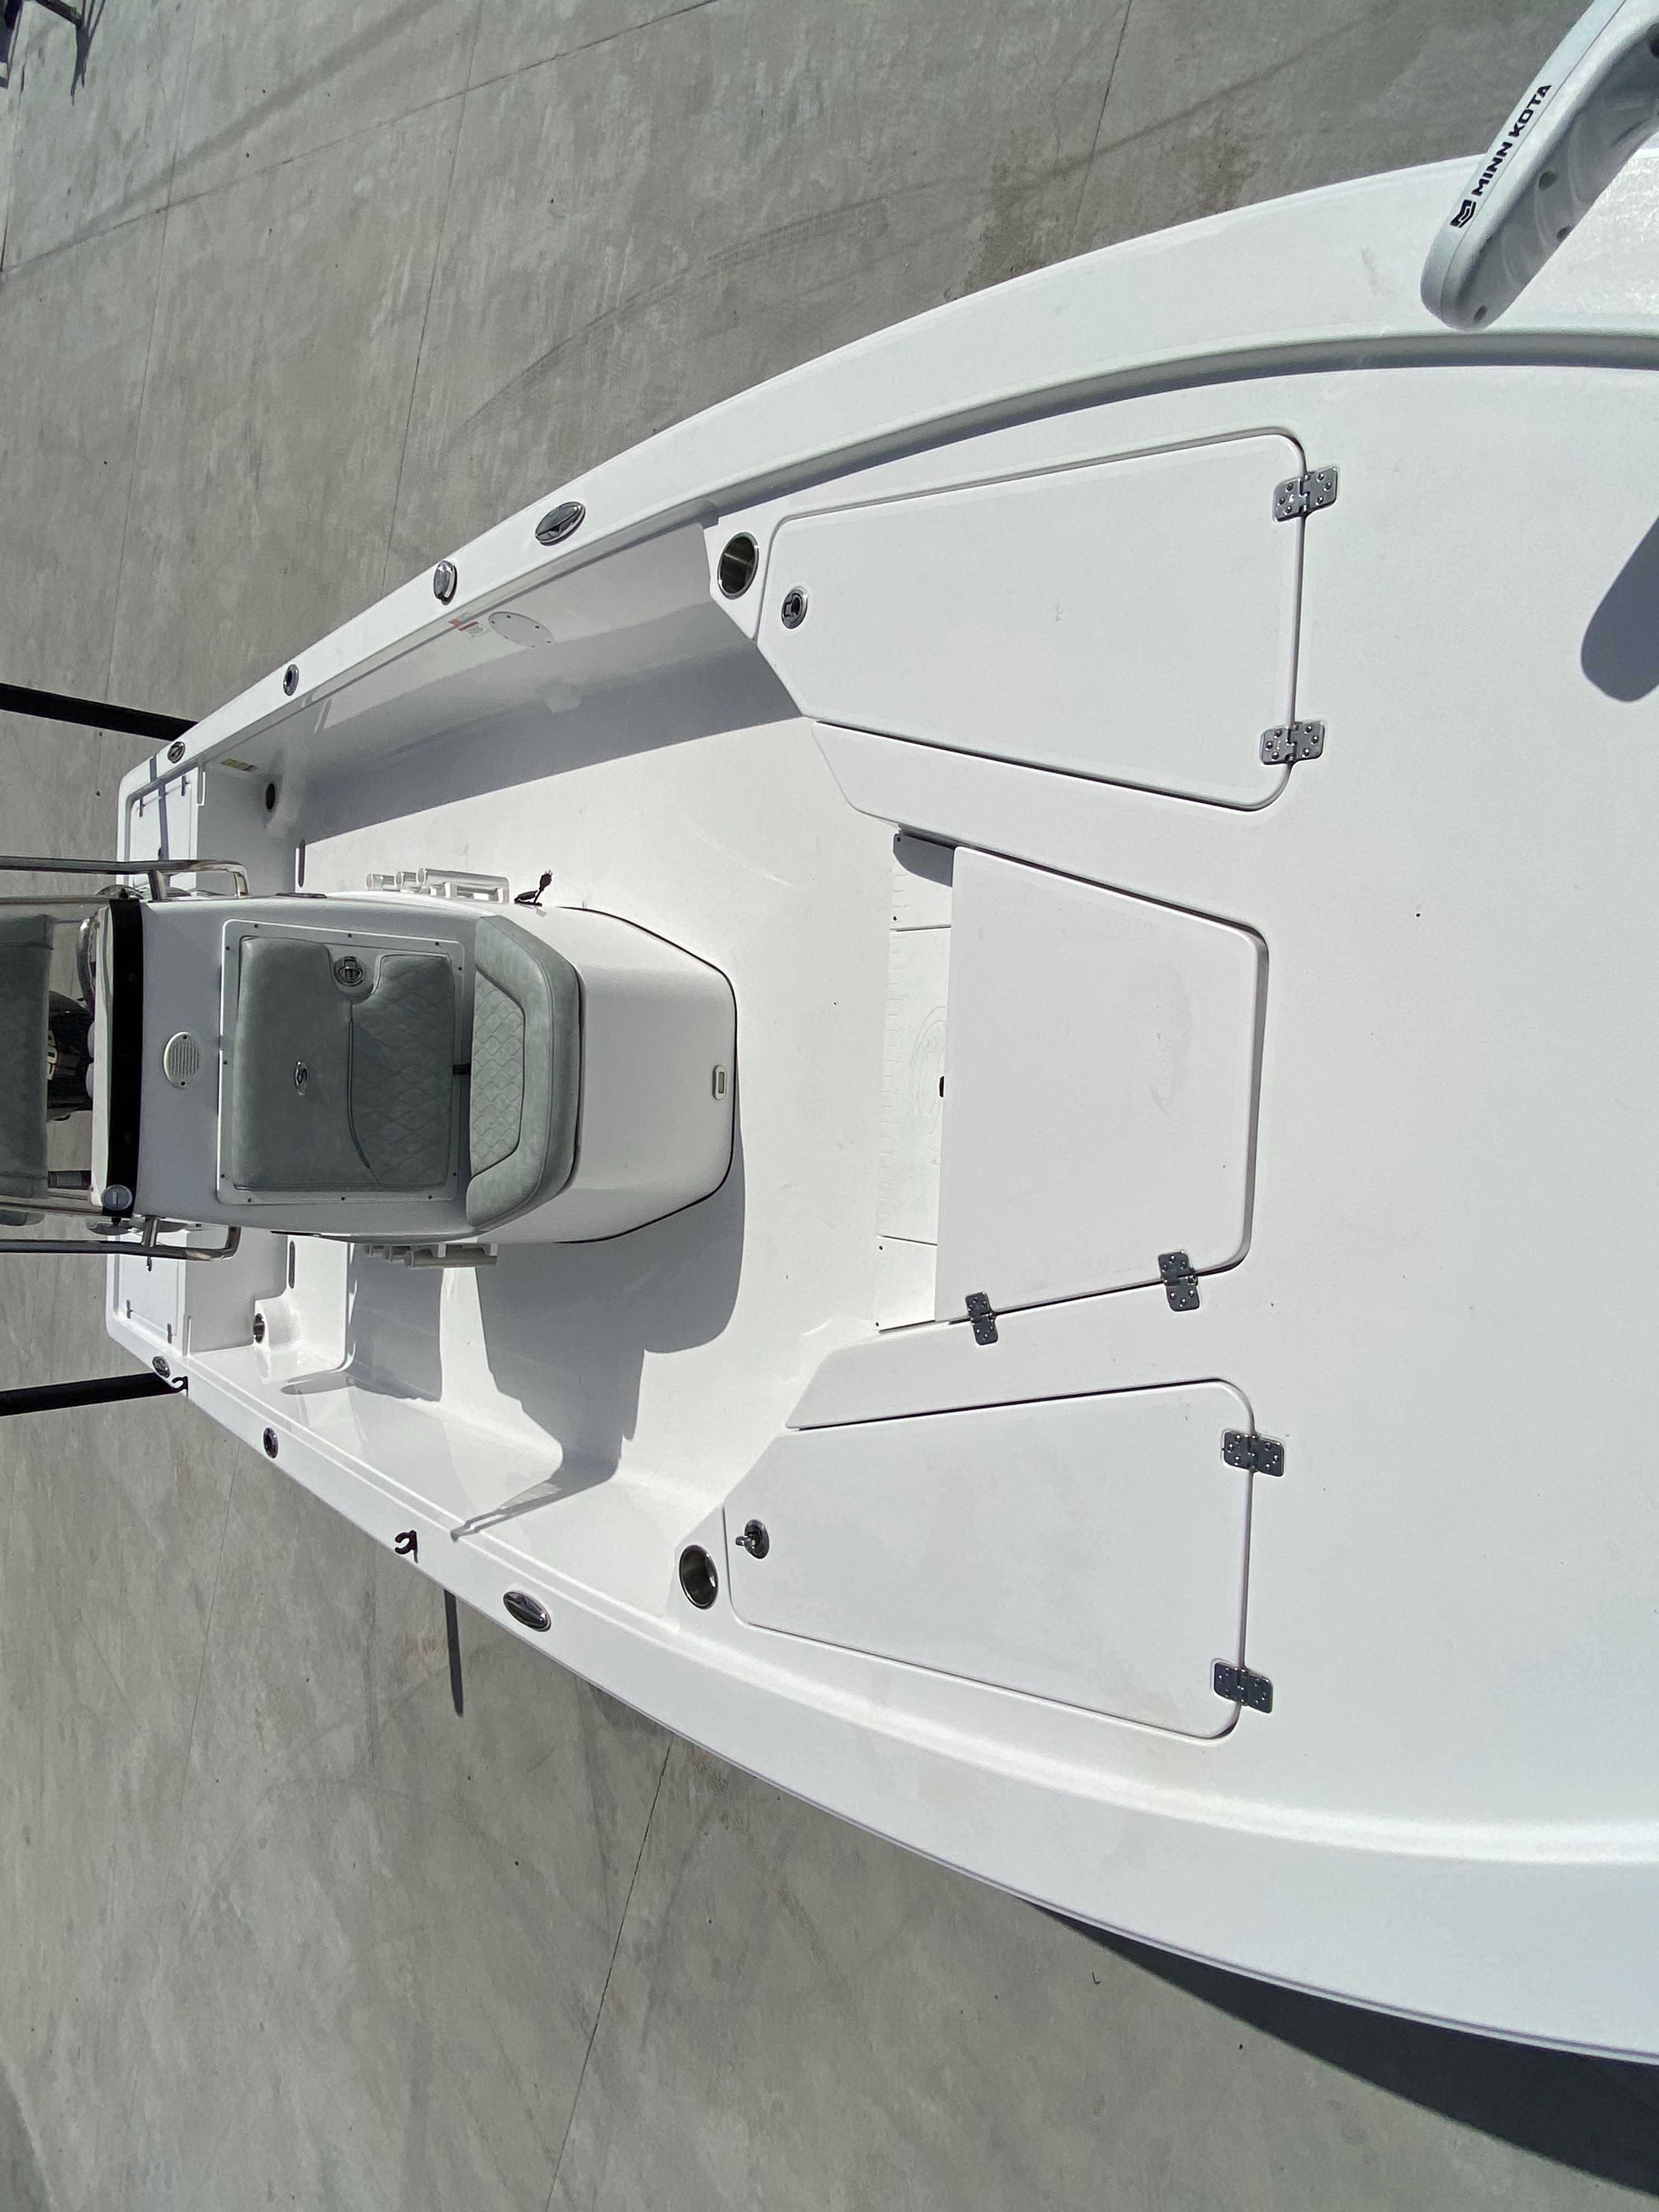 2019 Sportsman Boats boat for sale, model of the boat is 214 Tournament & Image # 10 of 26